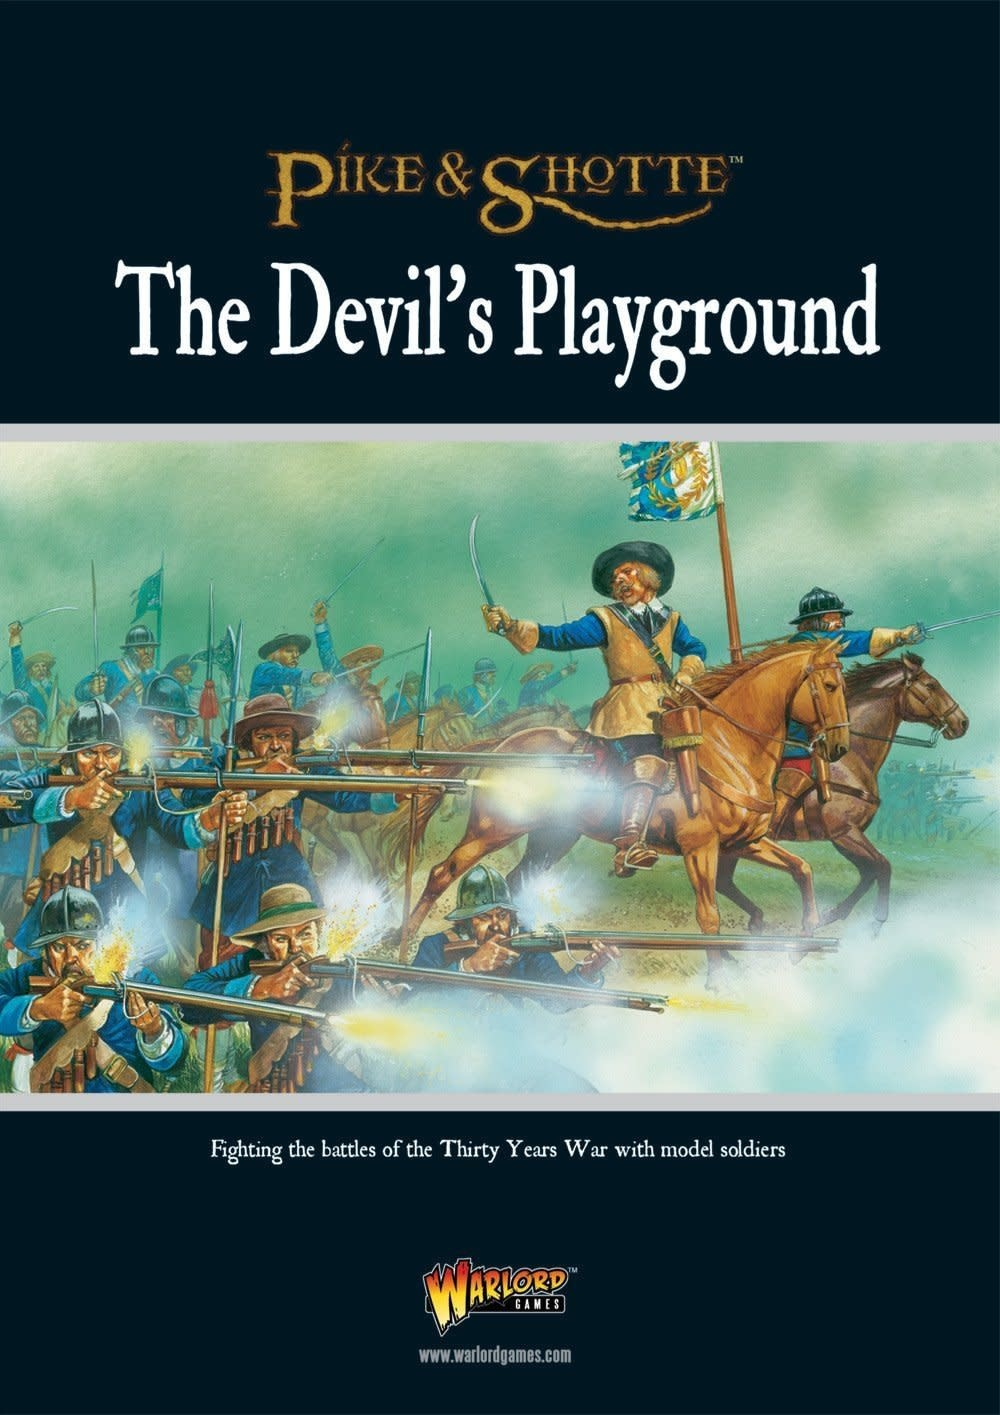 Warlord games Pike & Shotte: The Devils Playground Book